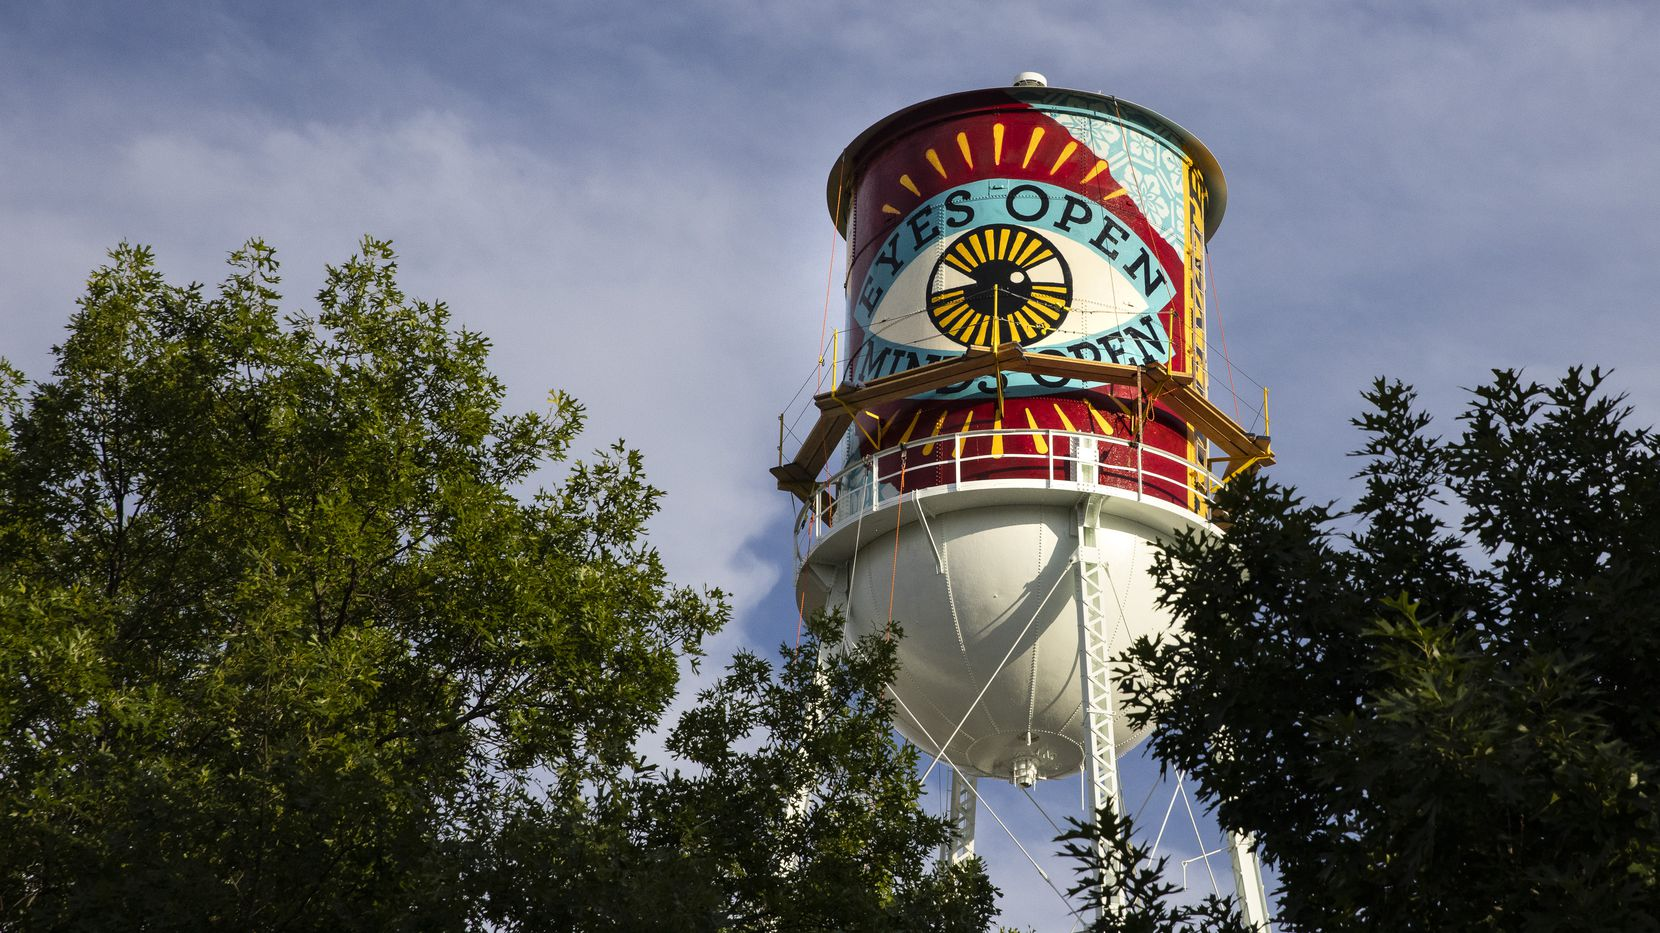 A new mural by Shepard Fairey appears on the side of a water tower by the Continental Gin Building in Deep Ellum in Dallas on Thursday, May 20, 2021.